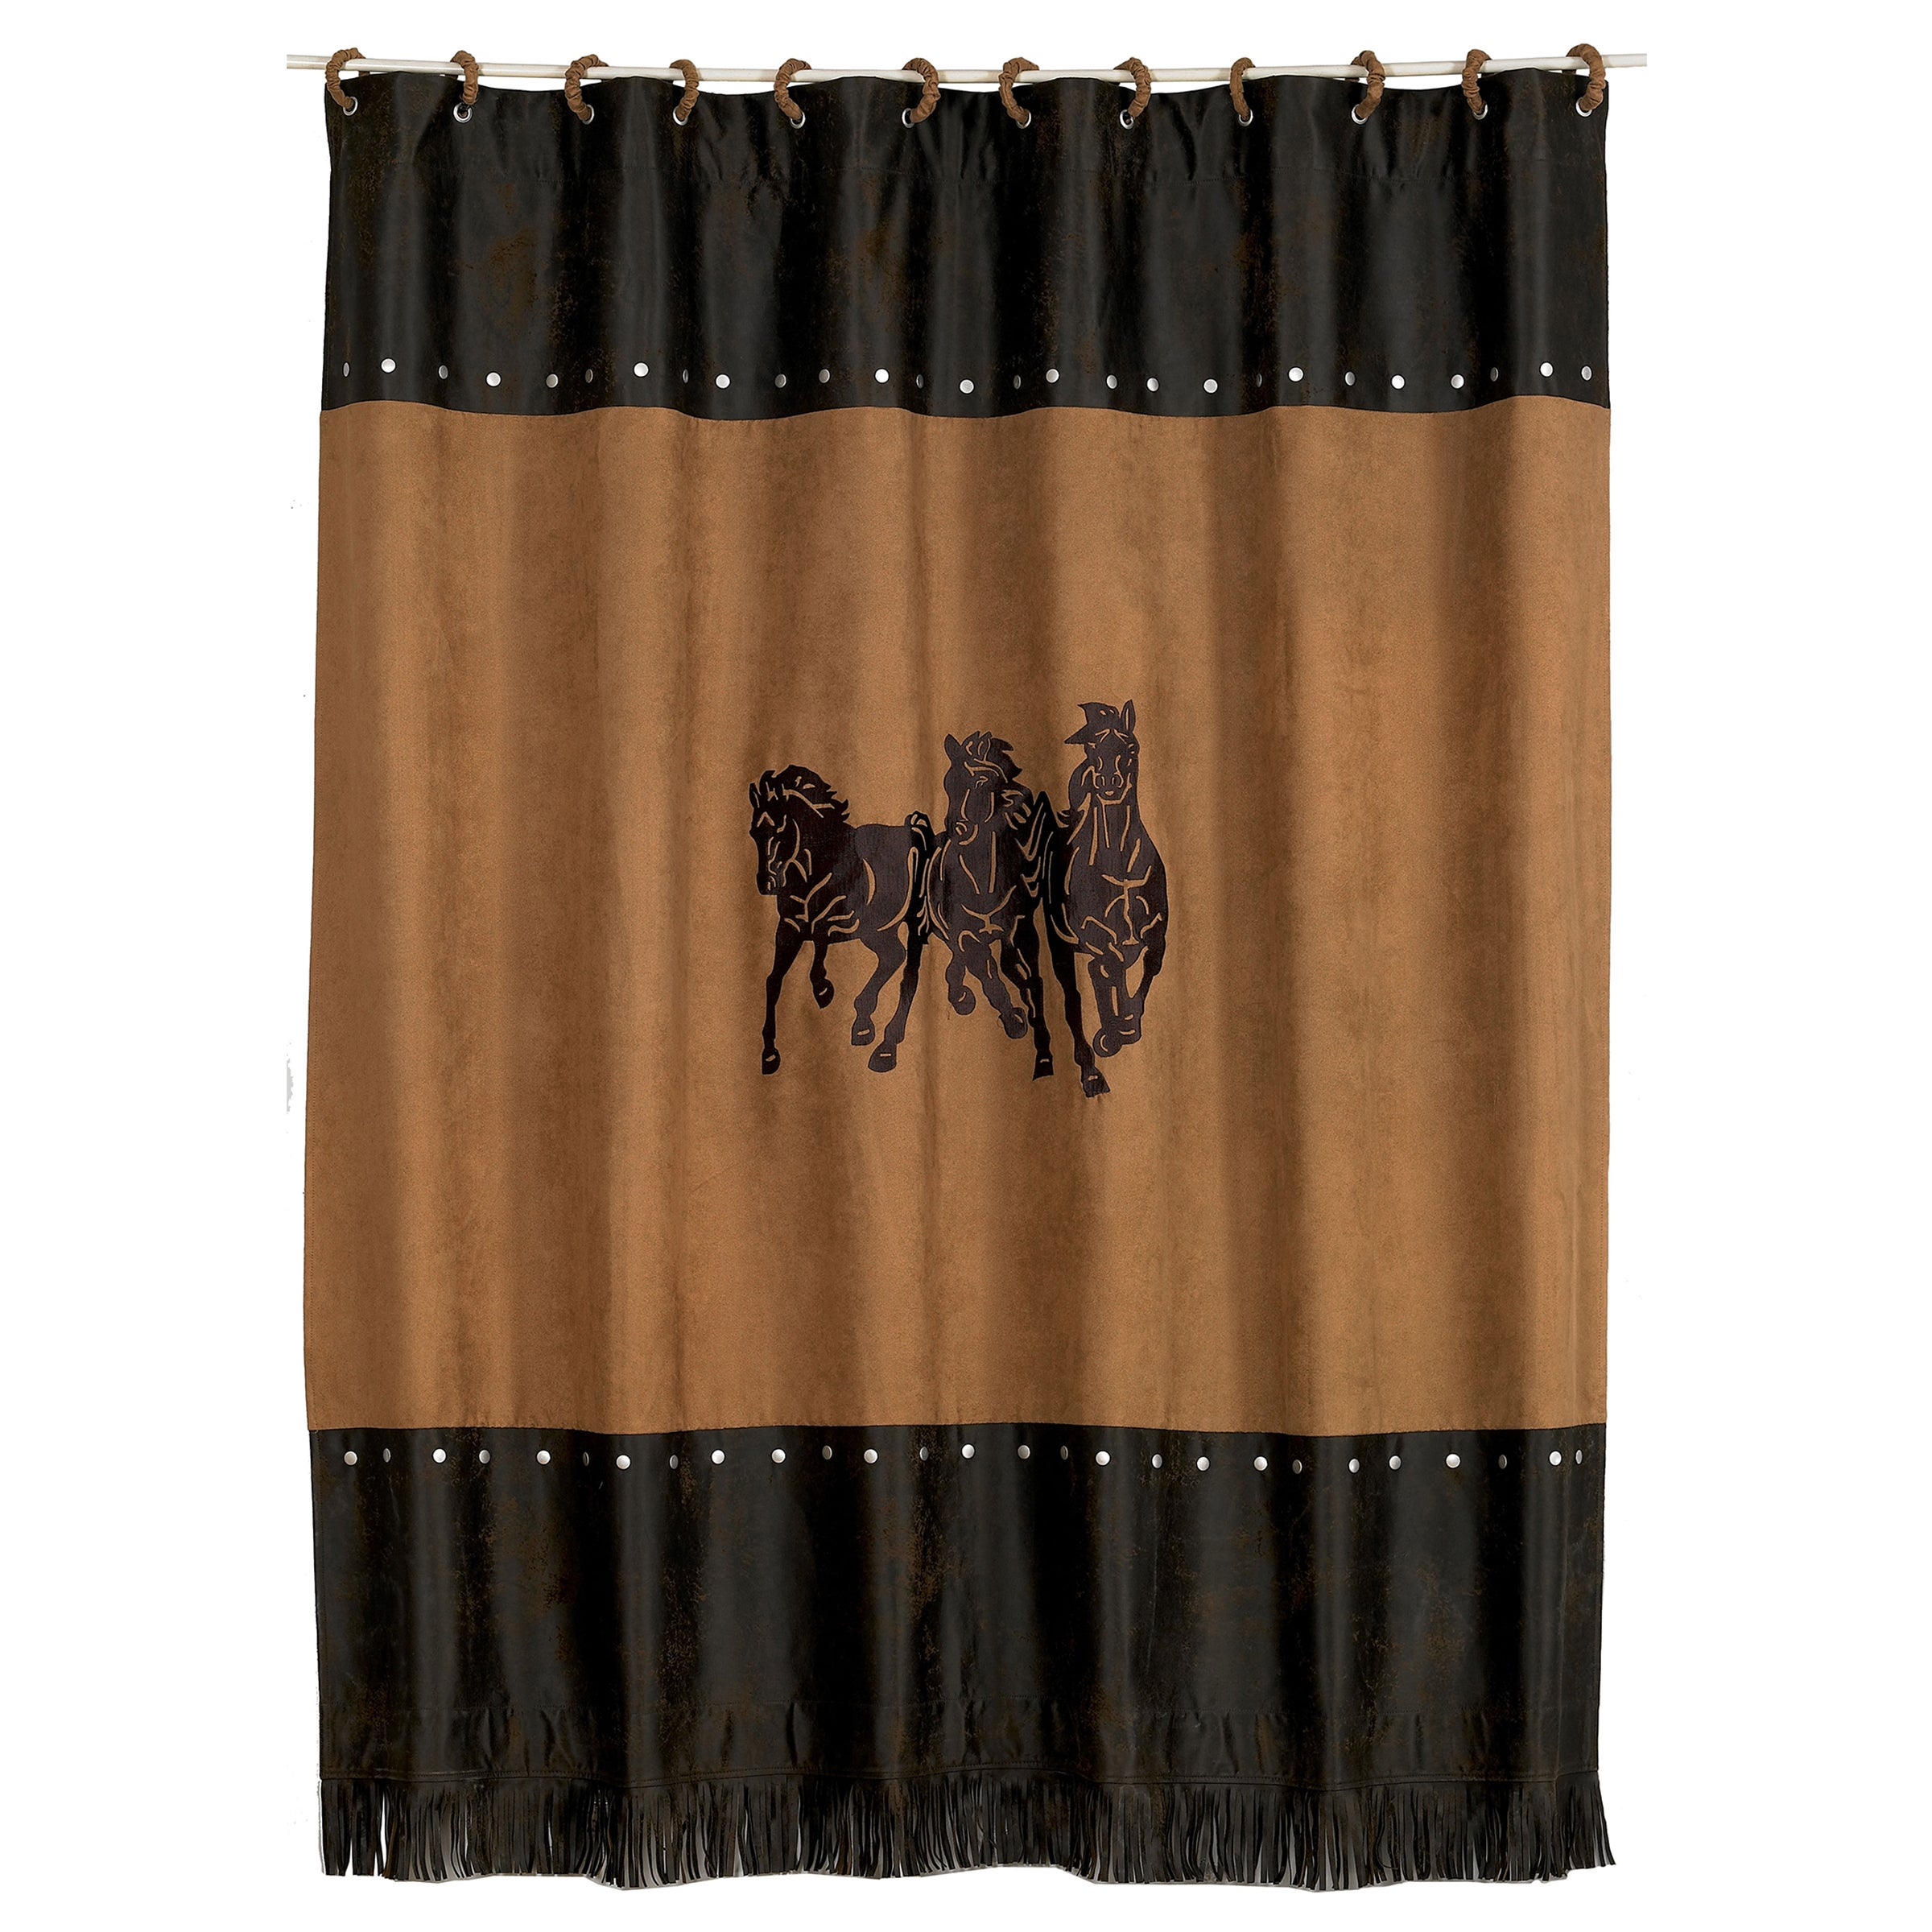 HiEnd Accents Embroidered 3-Horse Shower Curtain (Three h...